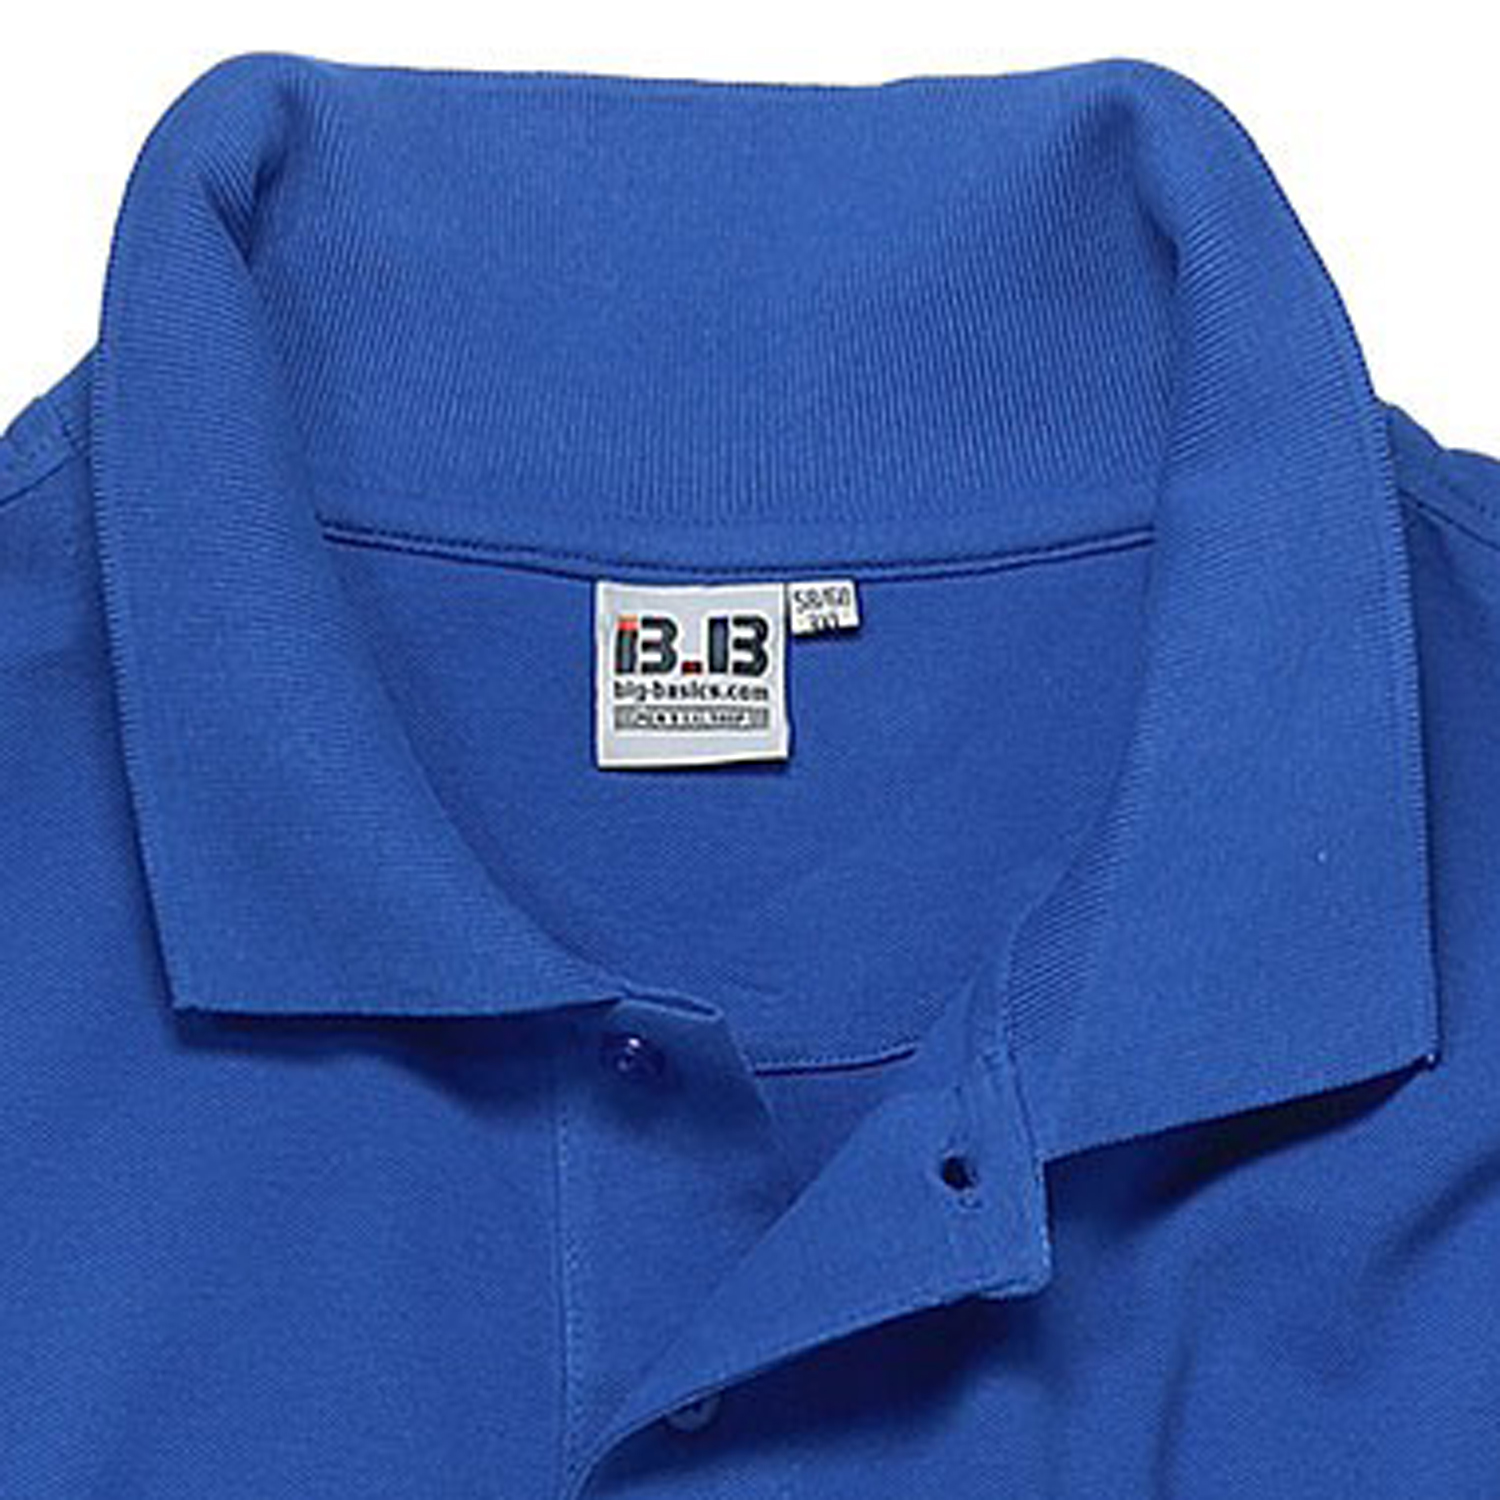 Detail Image to Blue polo shirt by Big-Basics in oversizes up to 8XL